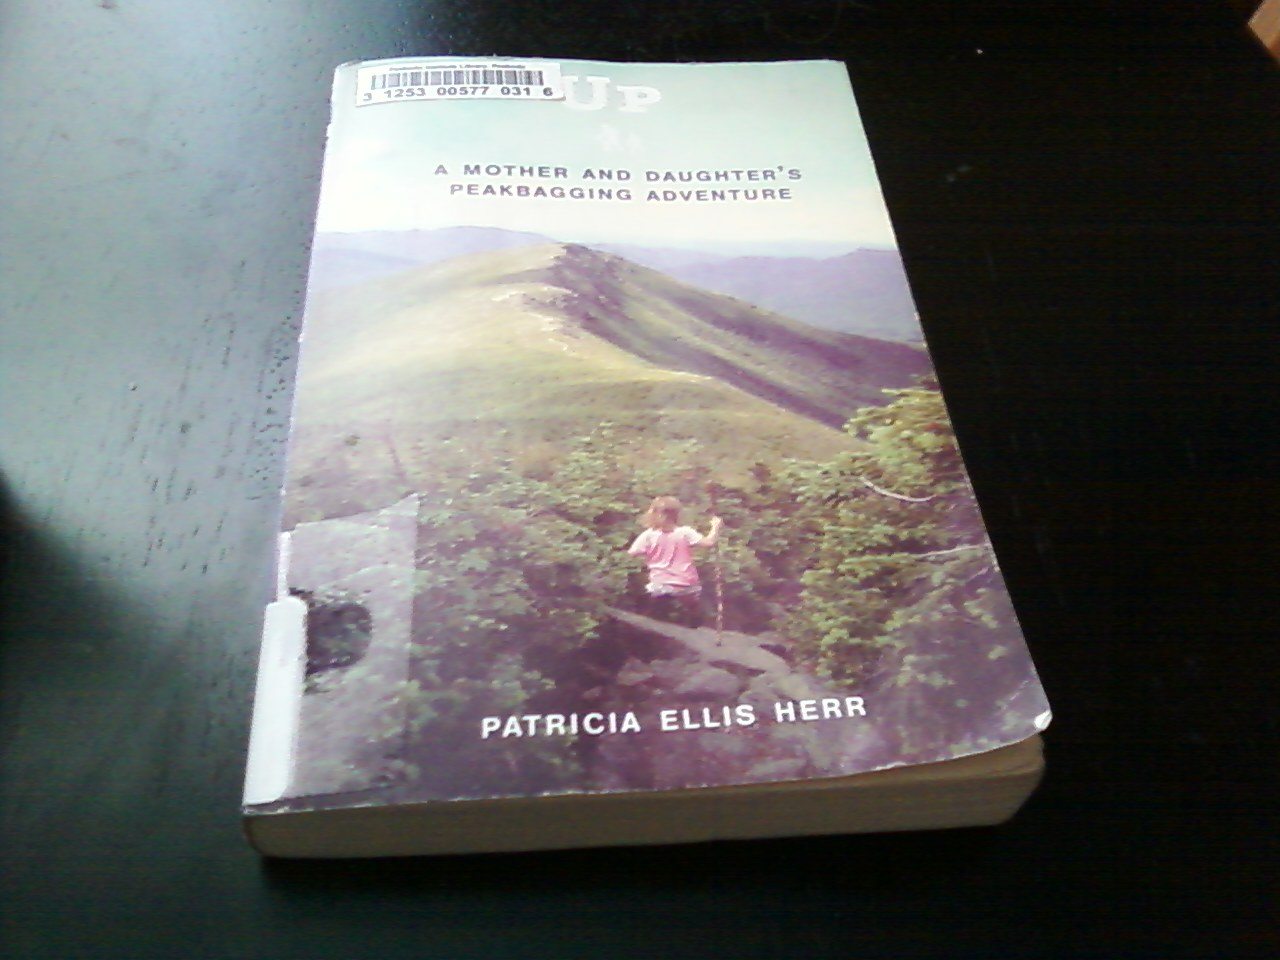 up herr patricia ellis